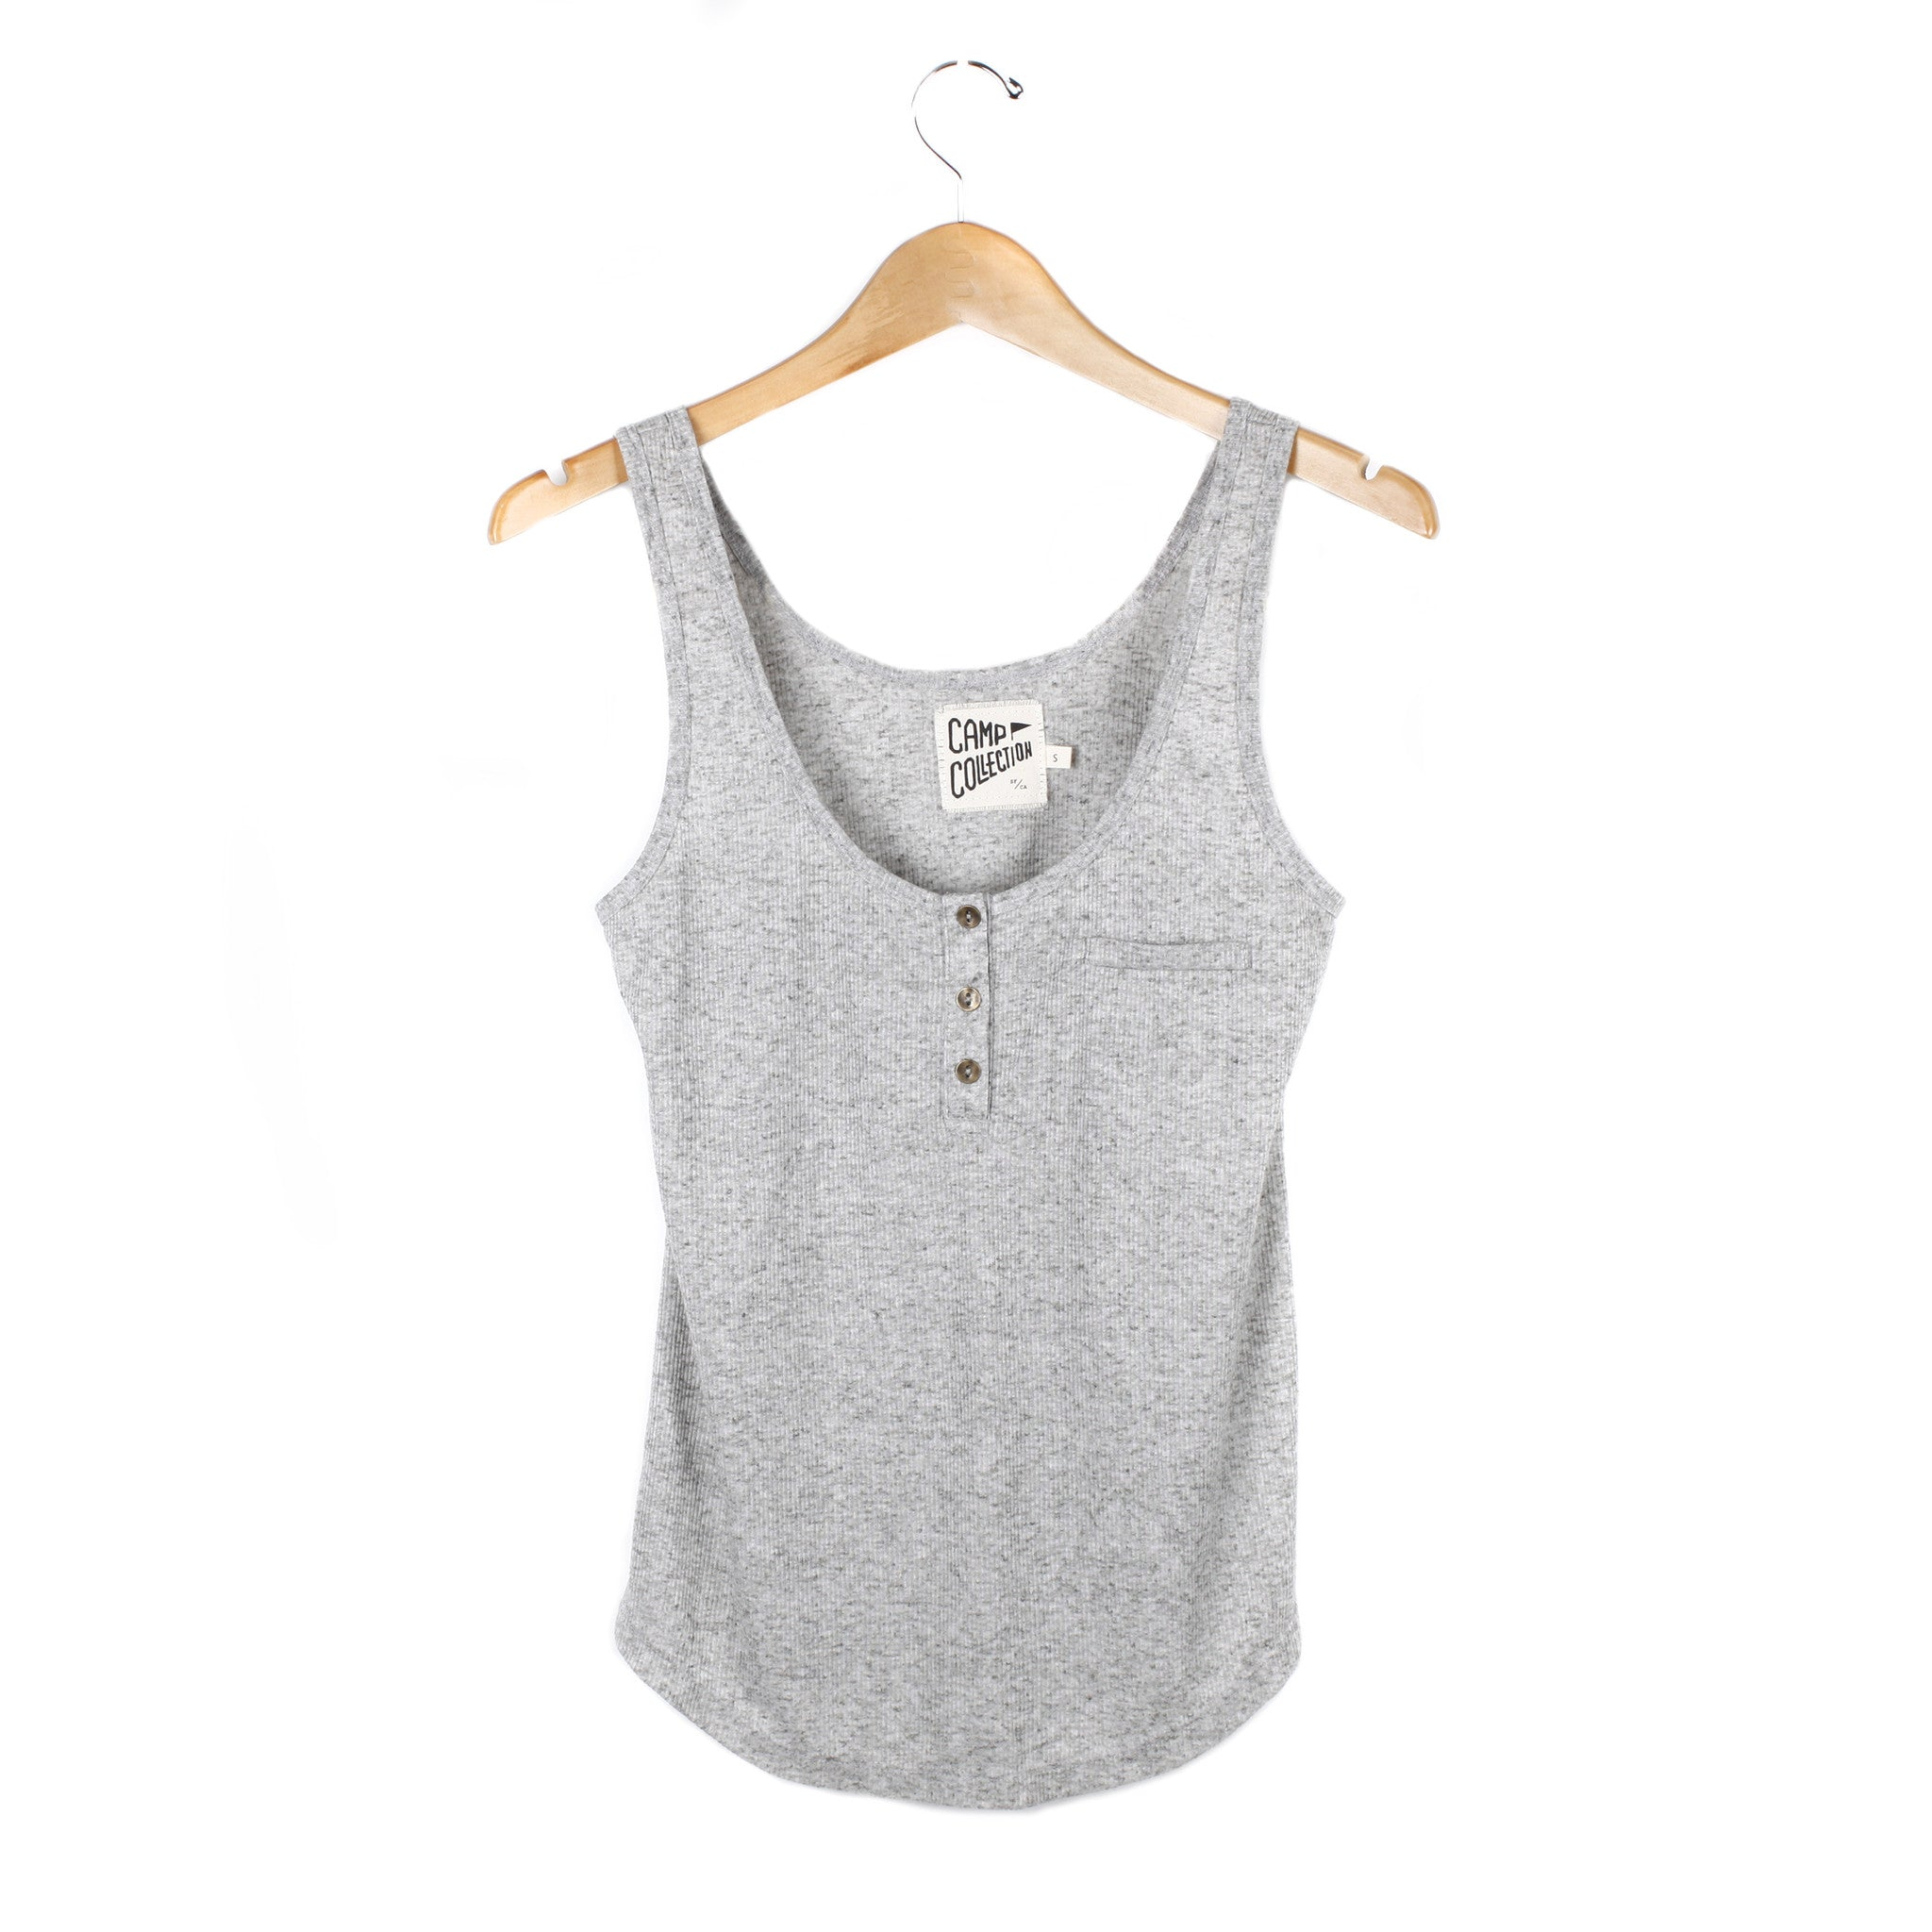 Henley Tank - SMALL / HEATHER GREY - CAMP Collection - 1